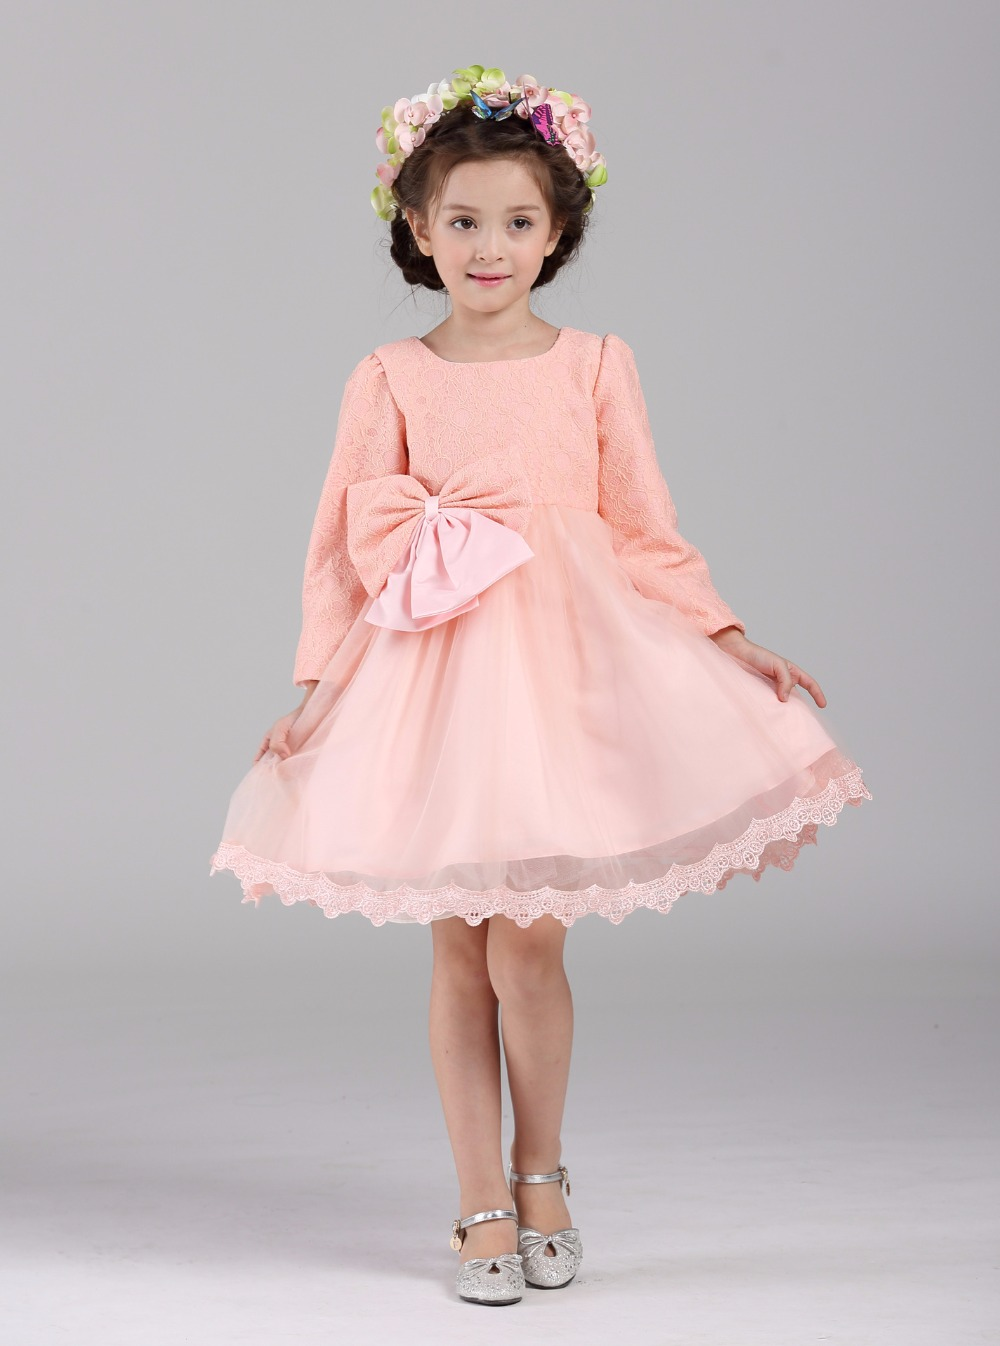 Dresses with Sleeves for Tweens